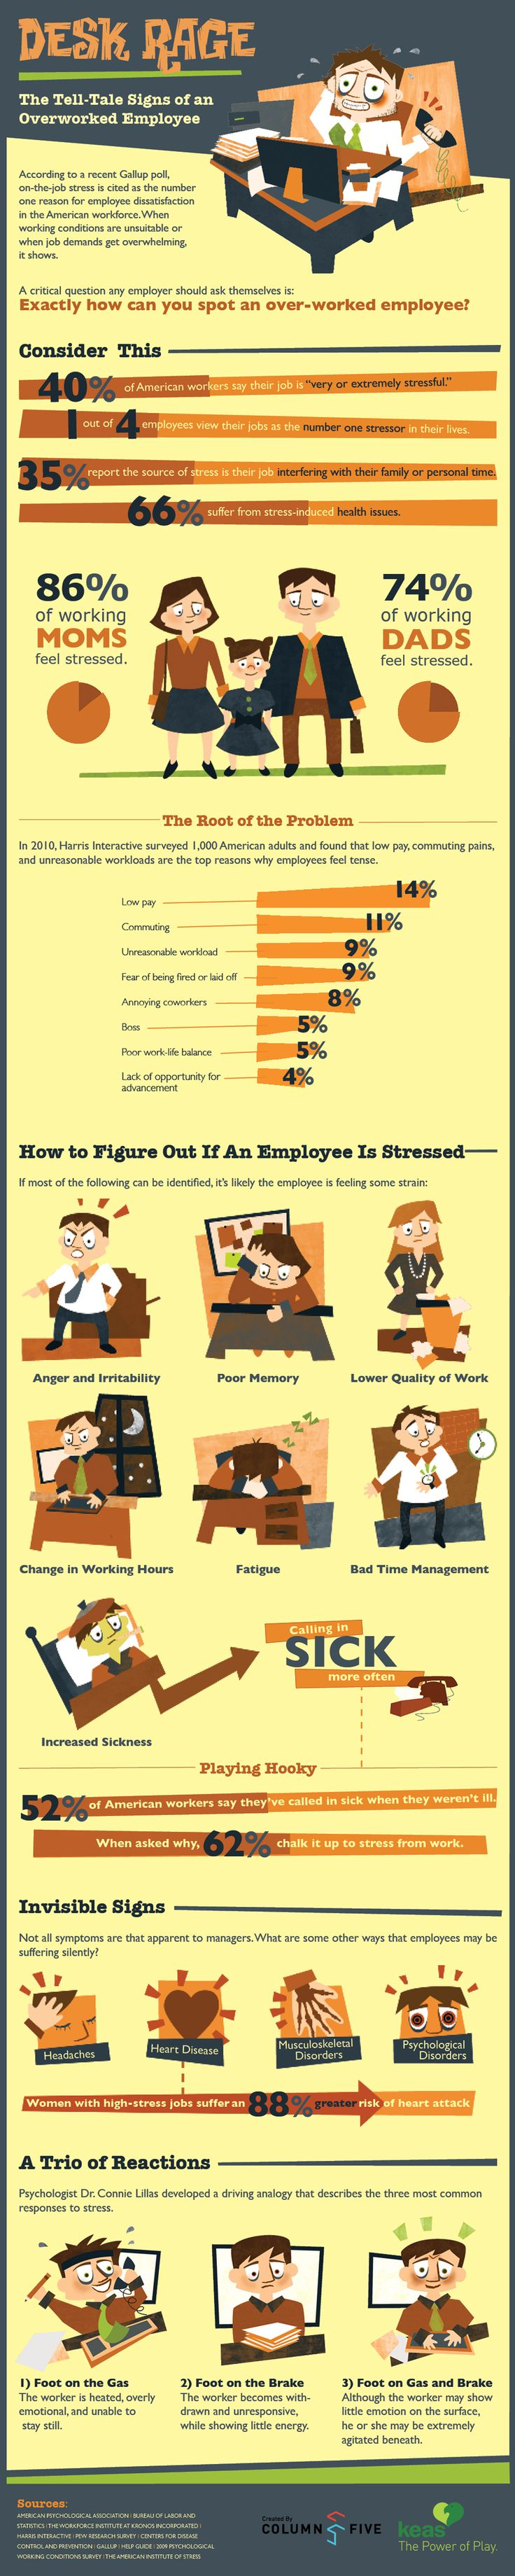 Are your employees overworked?  This #infographic shows you the signs to watch for!Work Stress, Stress At Work, Tell Tal Signs, Desks Rage, Overworked Employee, Coping Skills, Infographic, Feelings, Overworked Employment